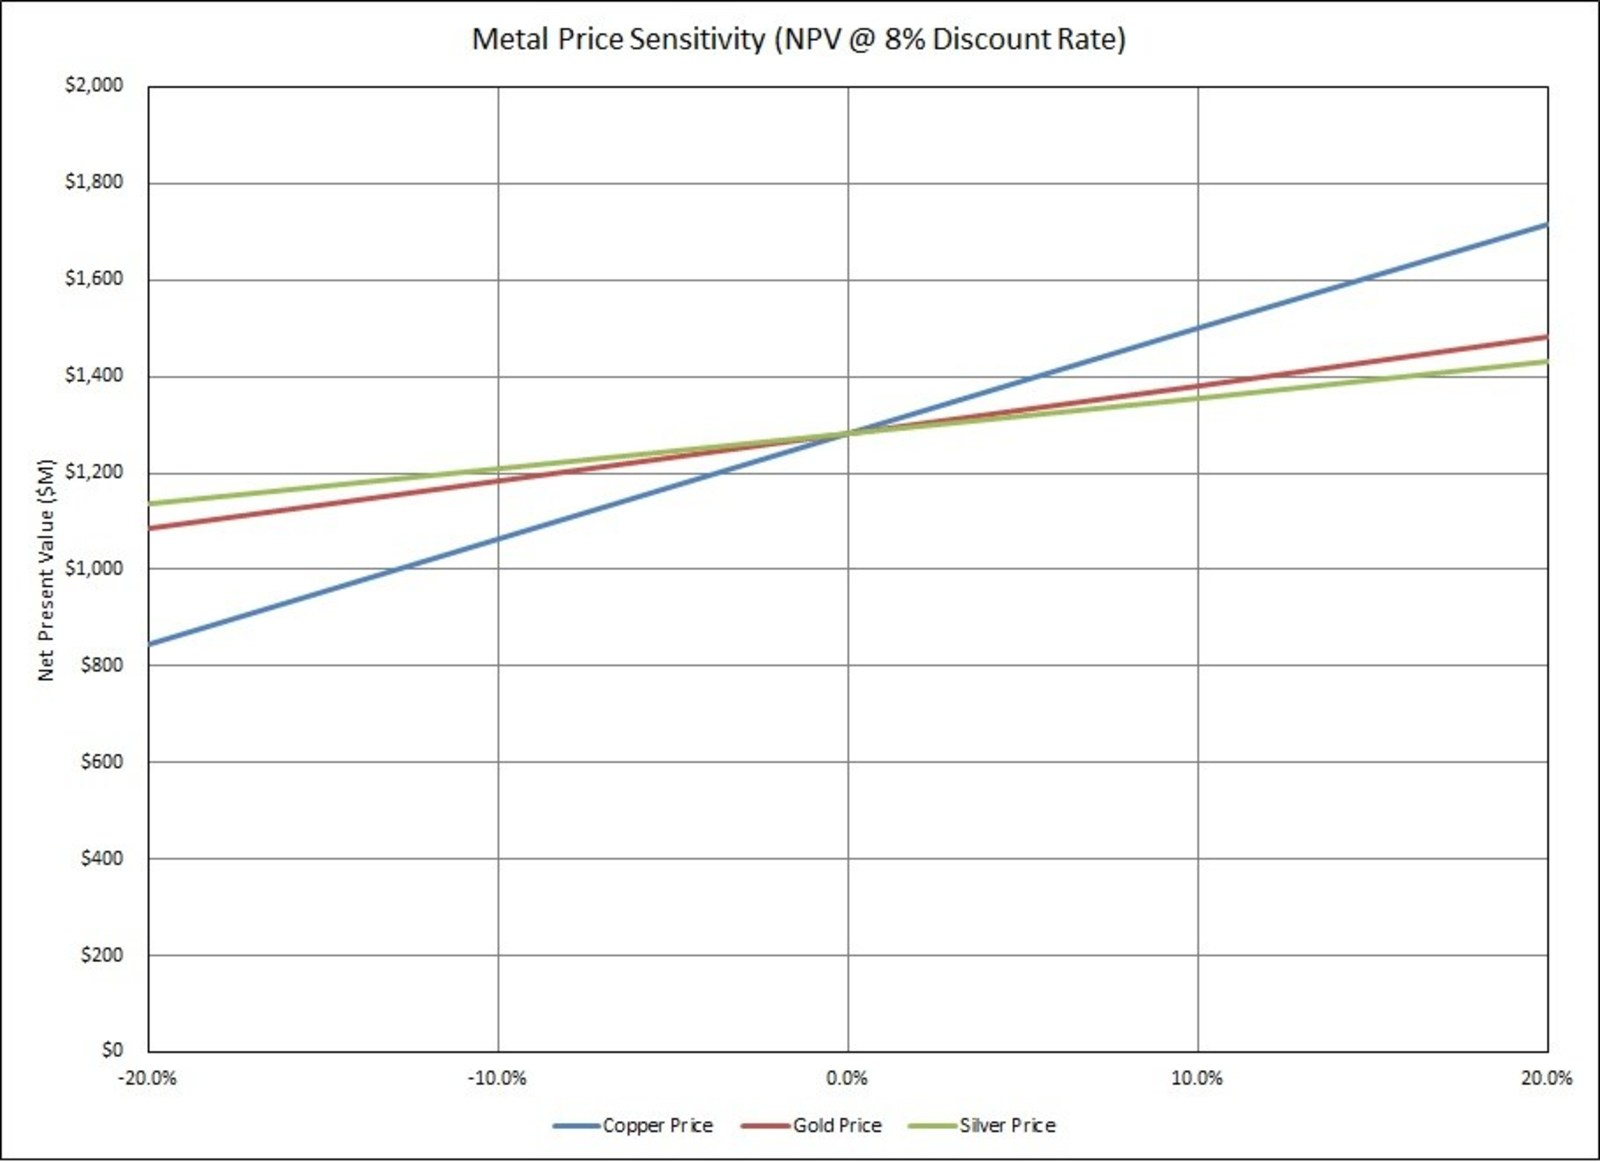 Image 1 - Metal Price Sensitivity